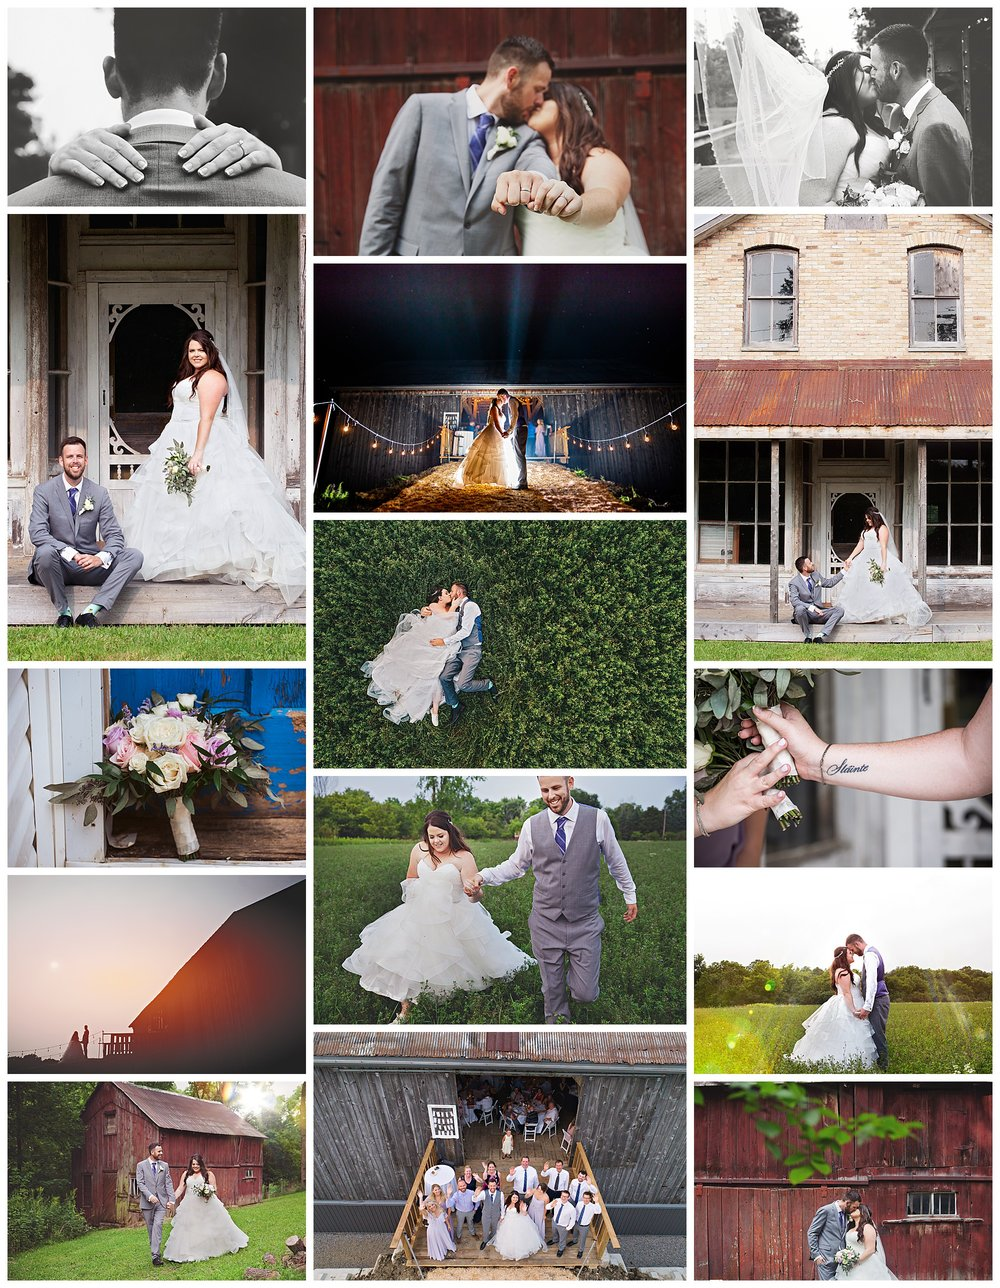 Strathroy, Ontario wedding photography by VanDaele & Russell